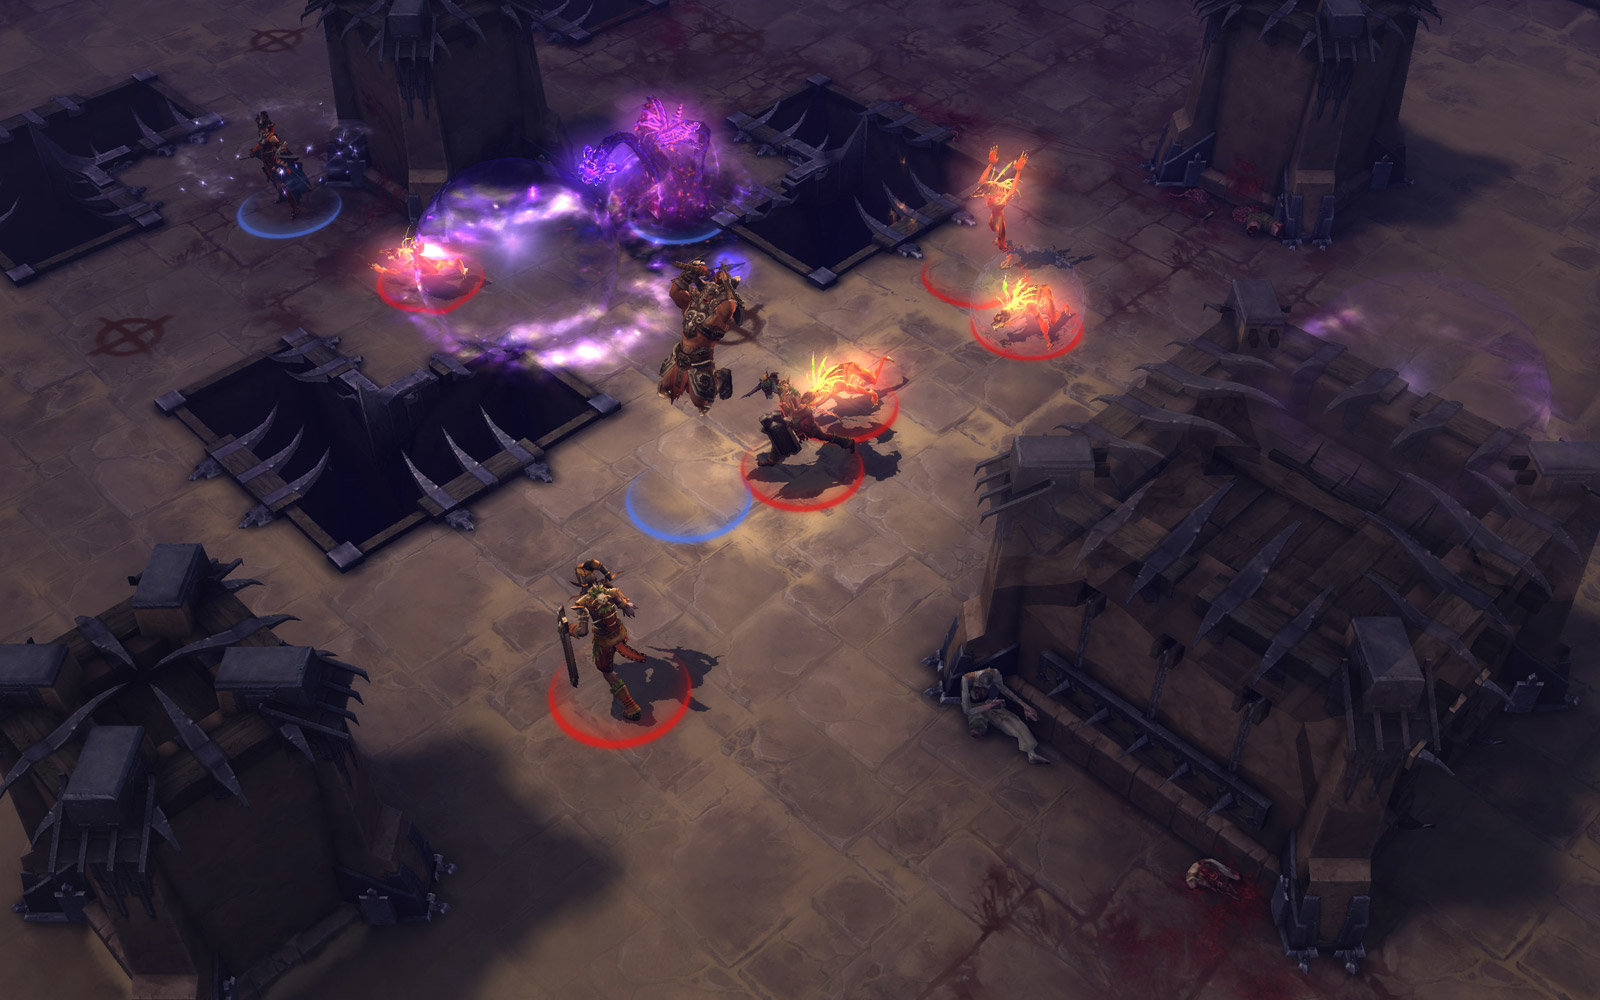 PvP in Diablo III